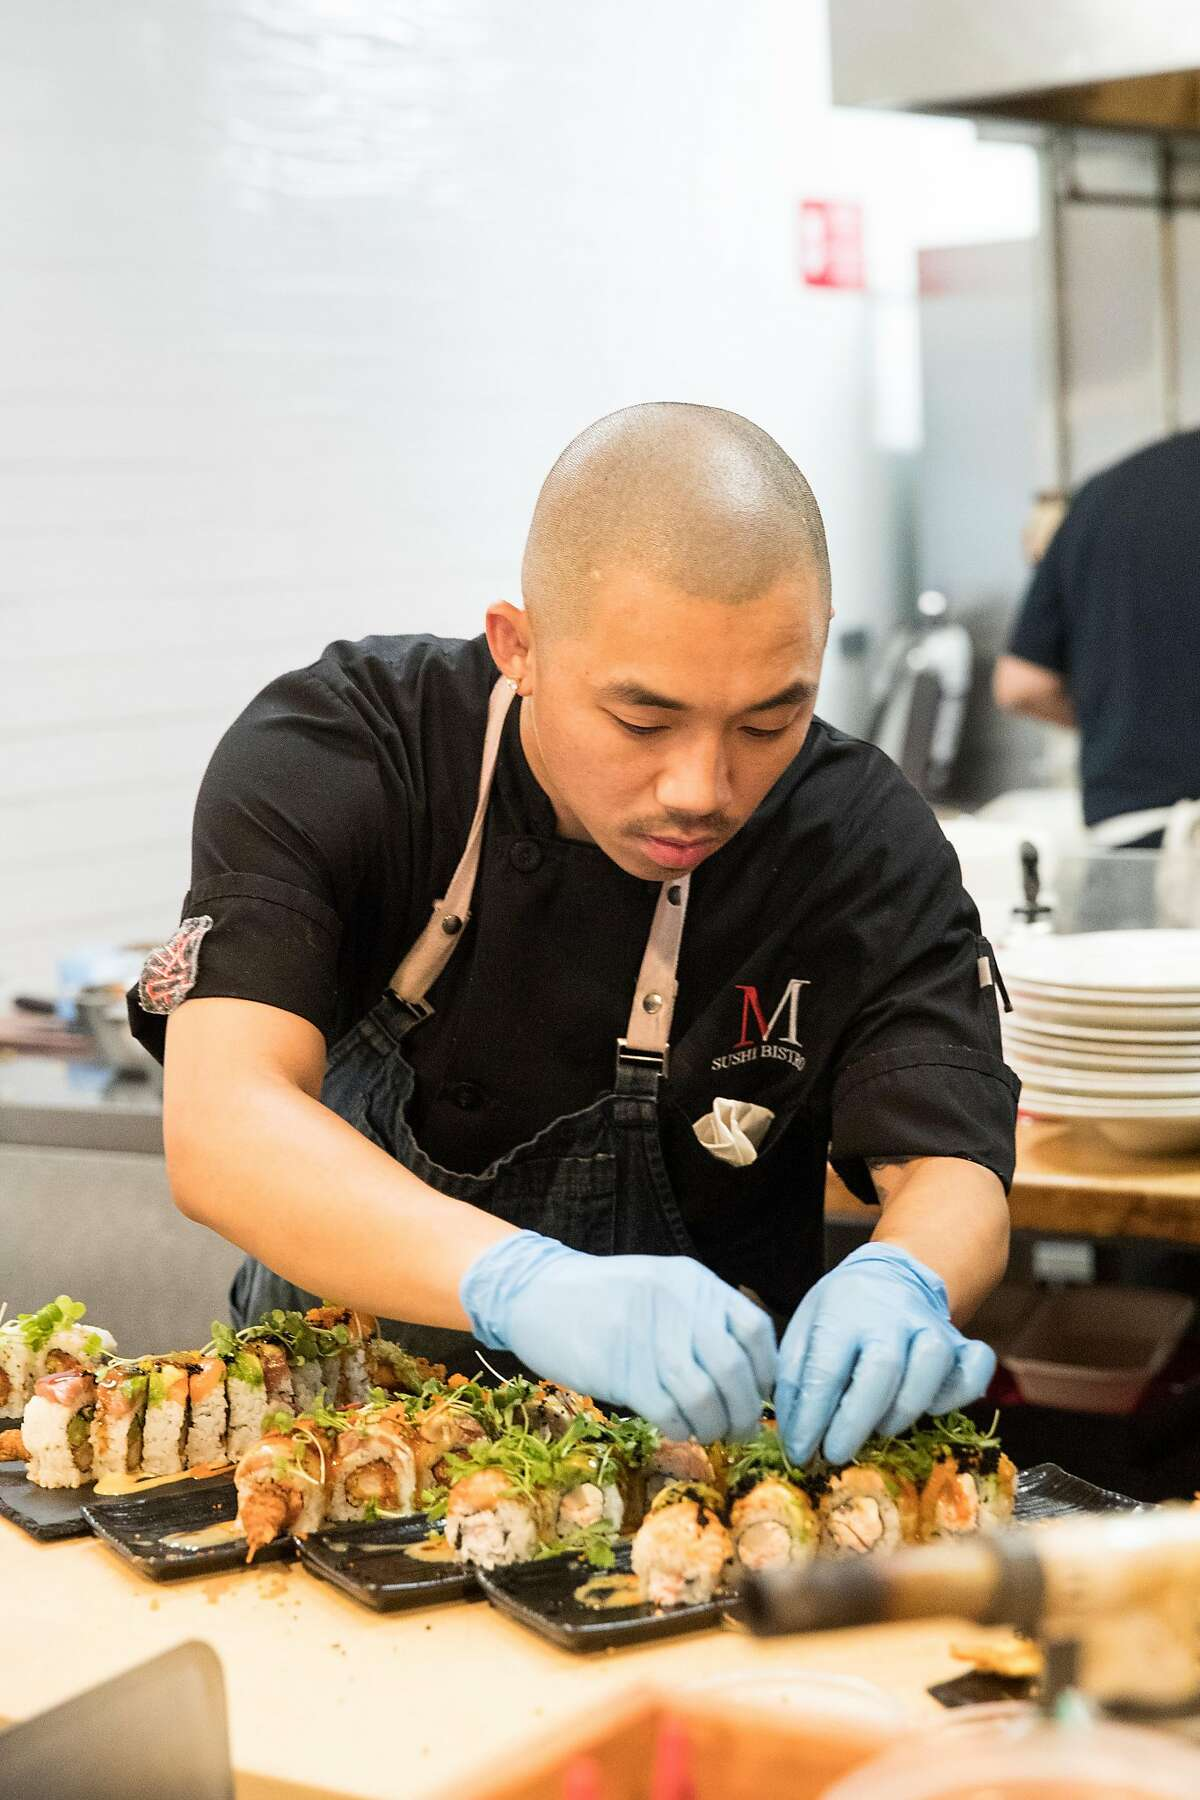 Chef Vu Huynh puts the finishing touches on sushi rolls at M Sushi Bistro in downtown Lodi, Calif., on Thursday, August 15, 2019.